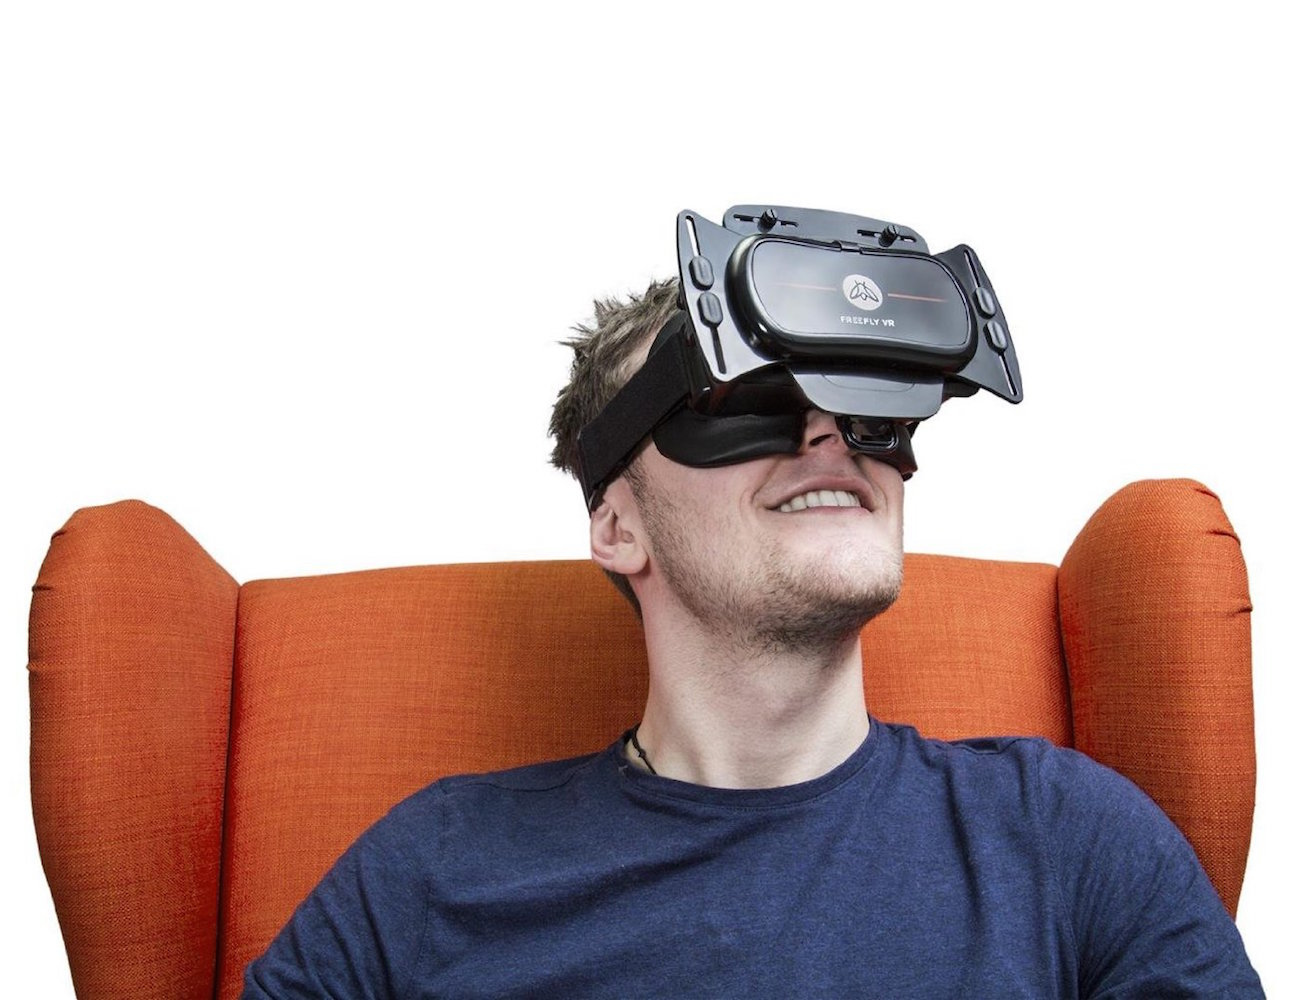 Freefly VR – Virtual Reality Smartphone 3D Headset